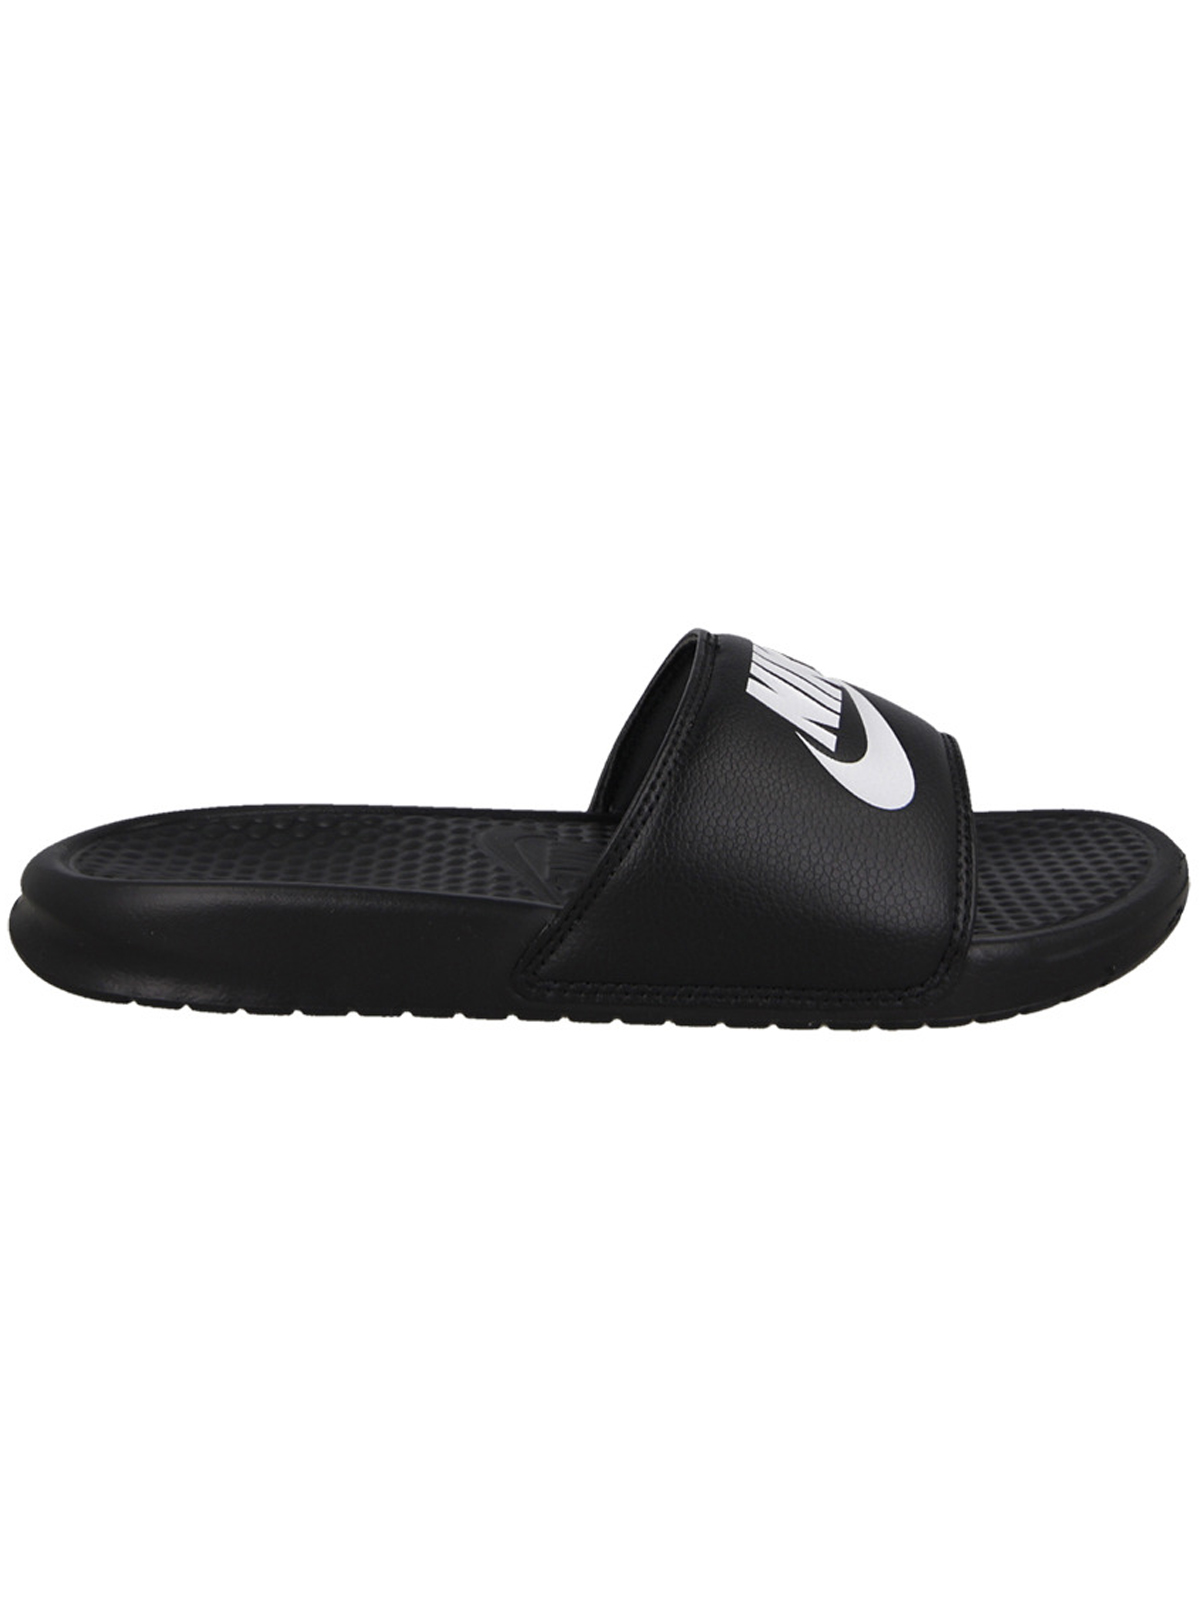 save off d267f 83829 NIKE Benassi slippers Just Do it